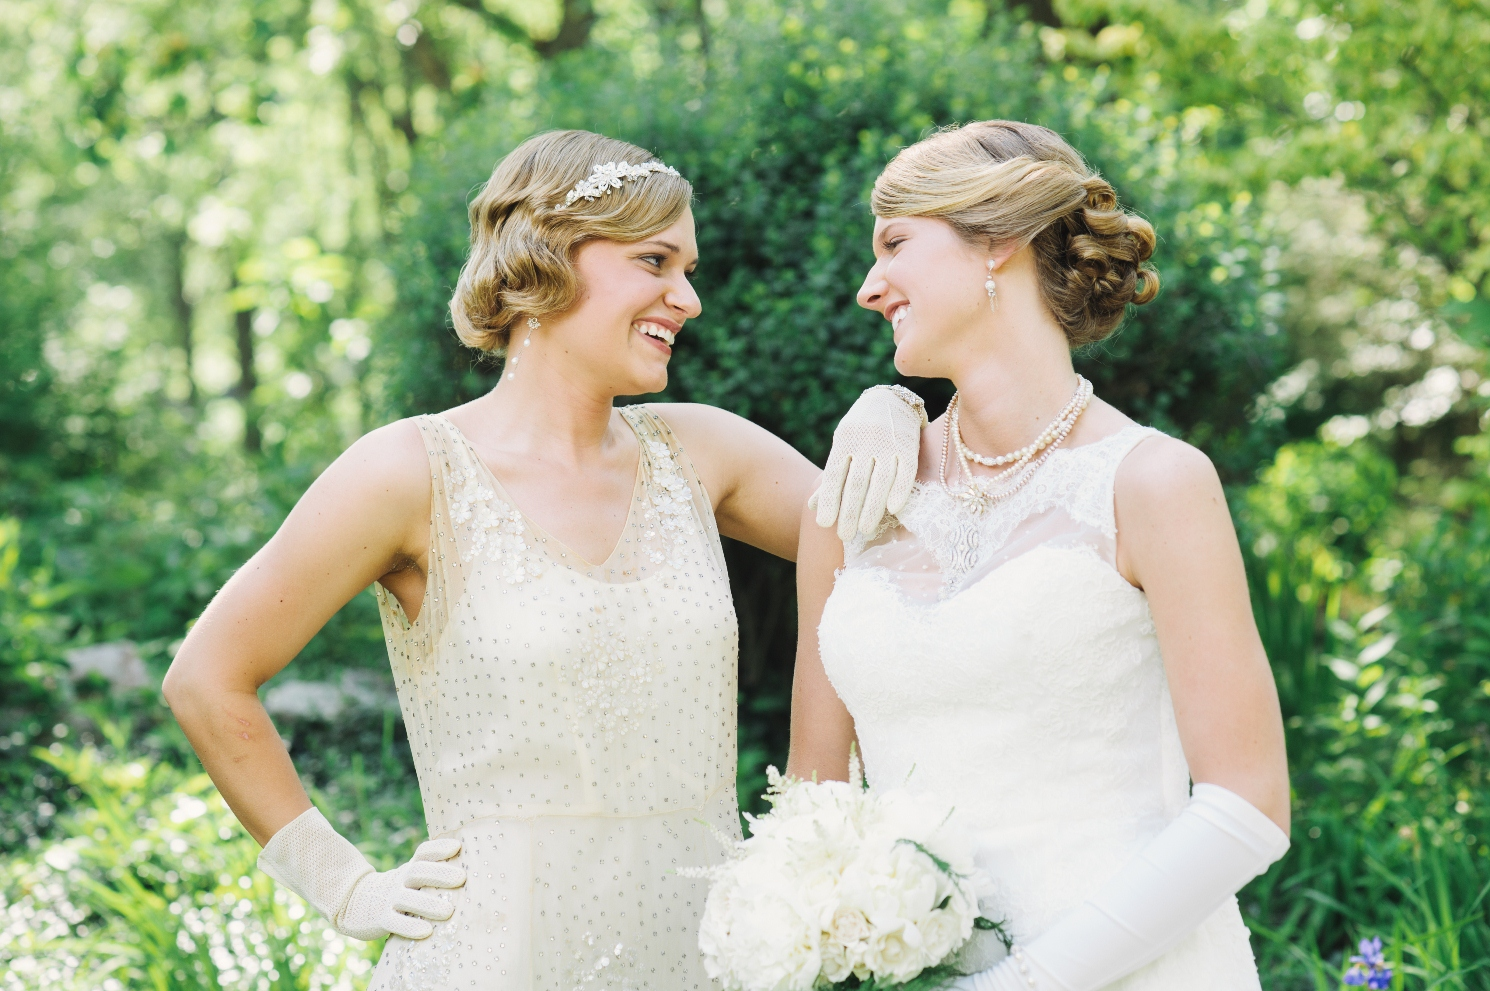 Downton Abbey Wedding Inspiration from Kimberly Brooke Photography